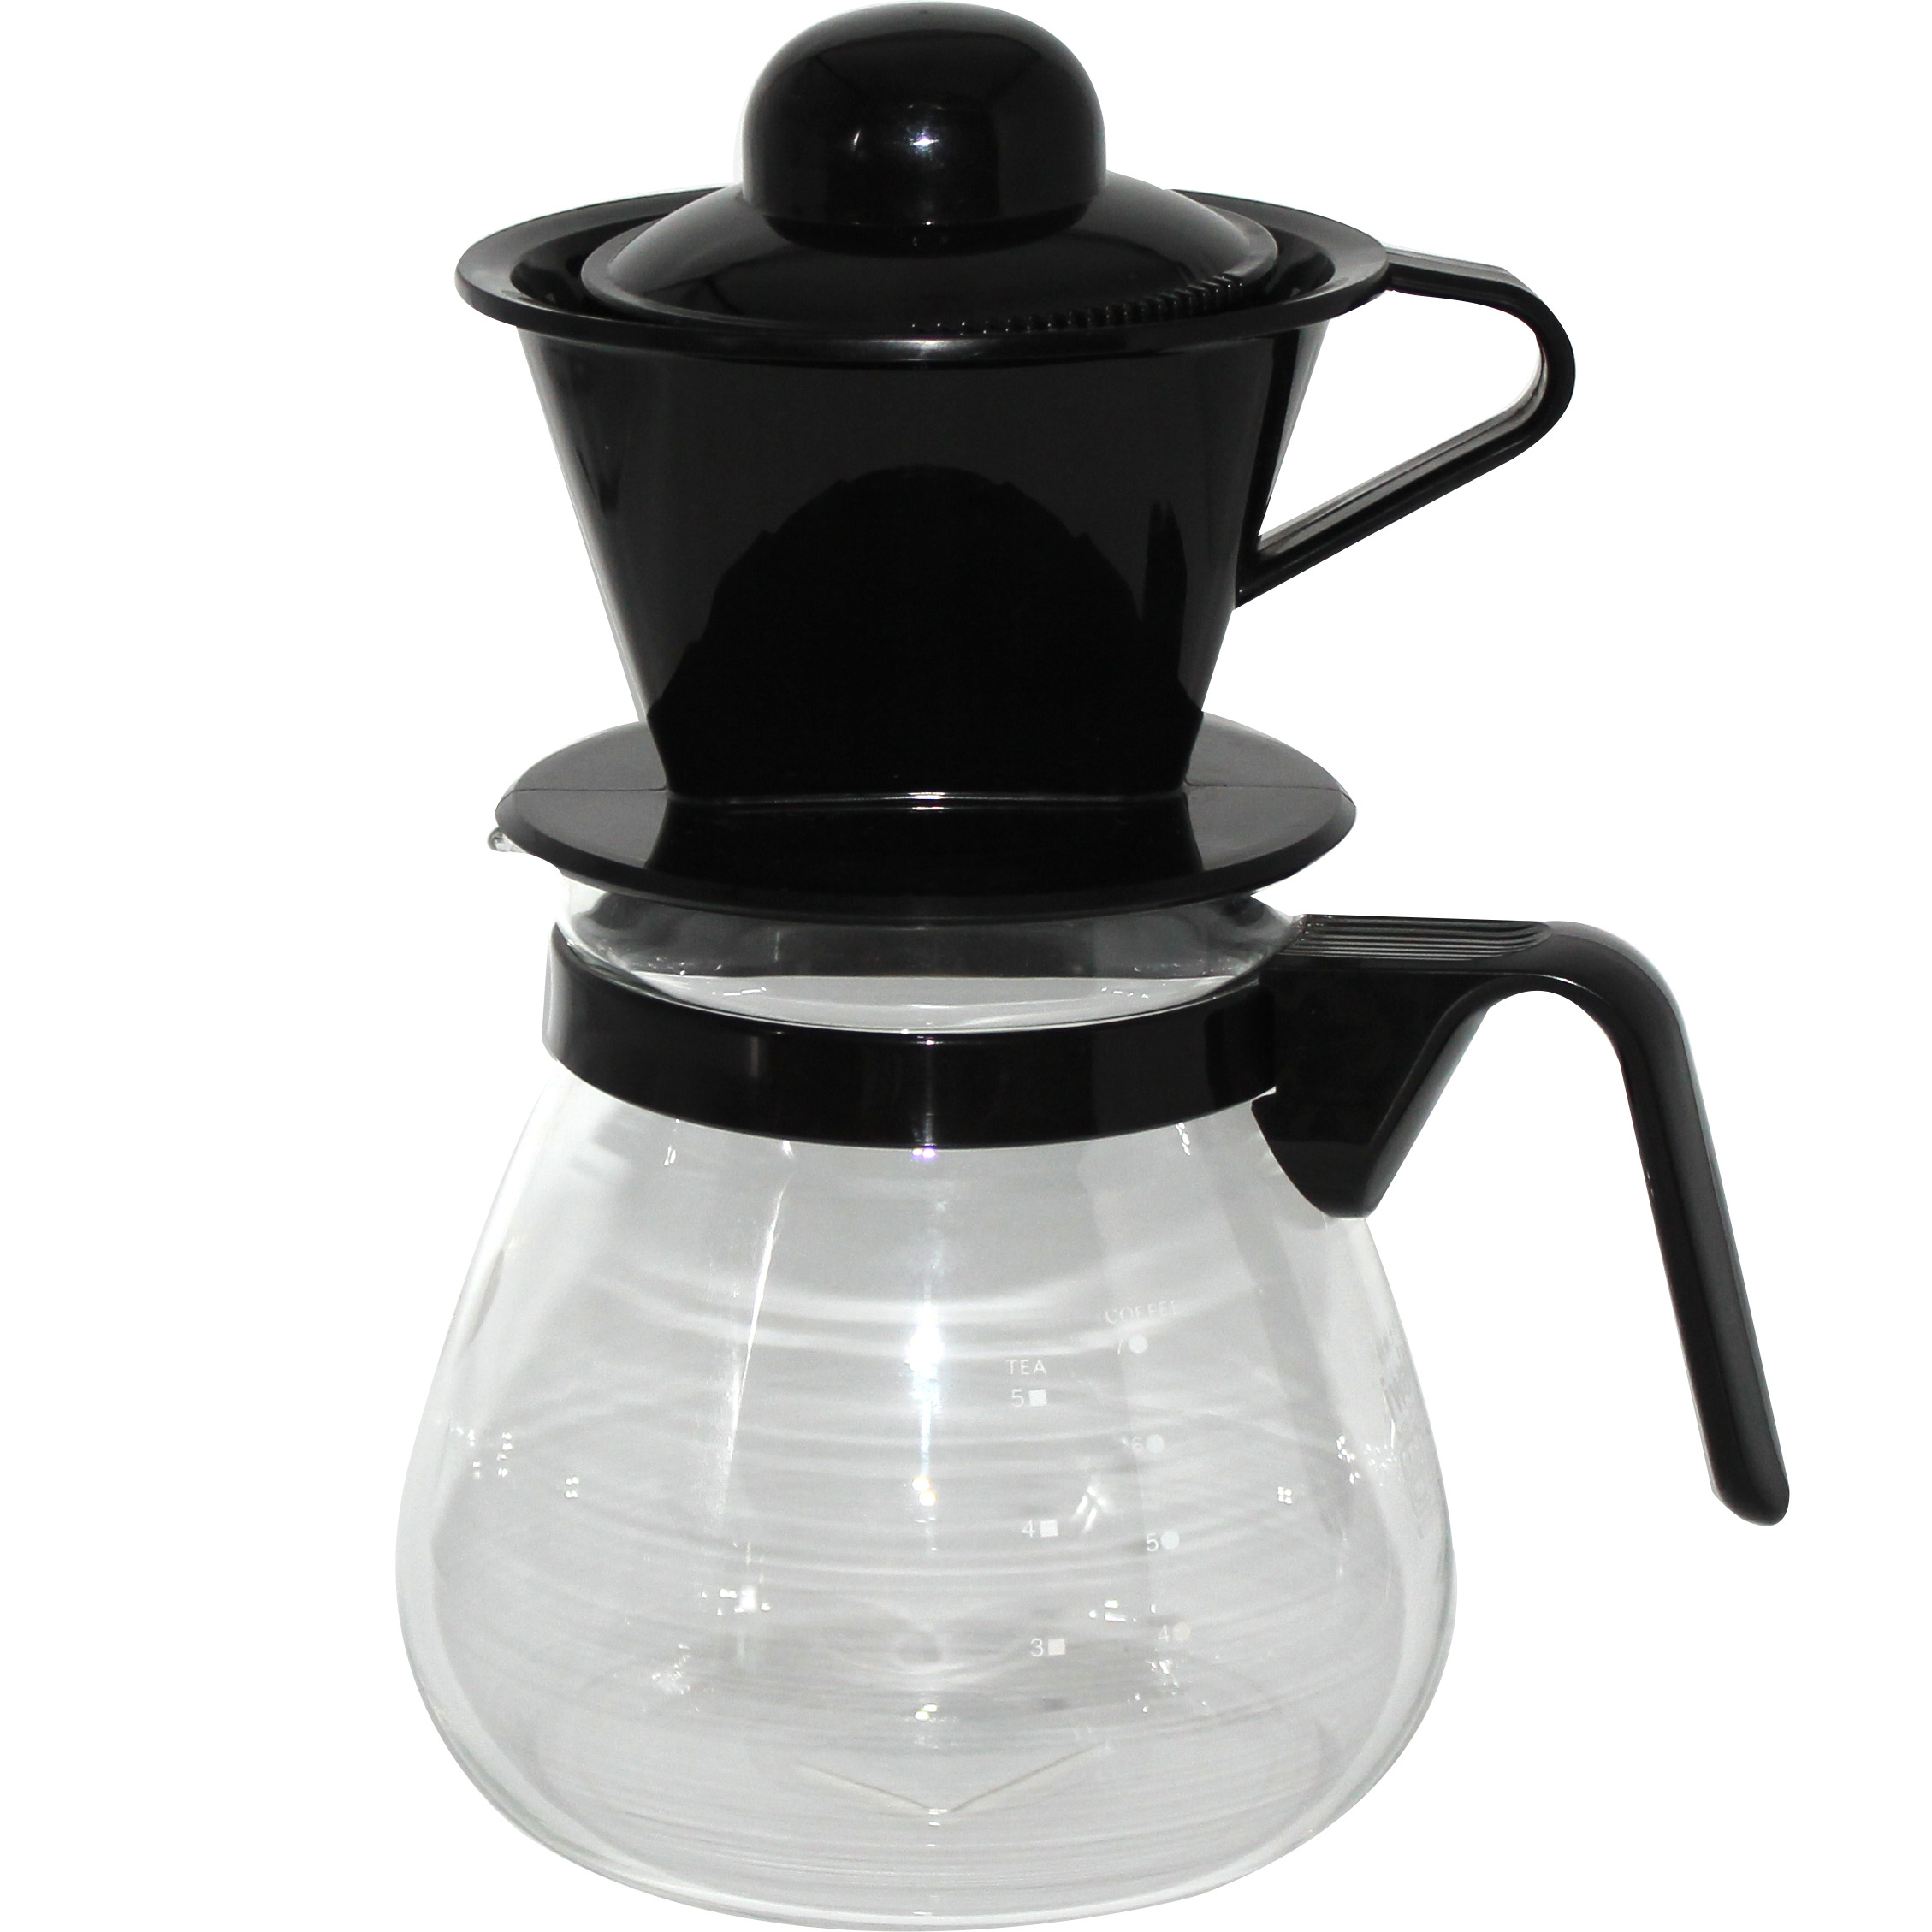 China Glass Coffee Drip Shopping Guide At Yami V01 Porcelain Dripper Blue Get Quotations Iwaki Yi Ten Thousand Hand Punch Pot With Strainer Filter Percolator